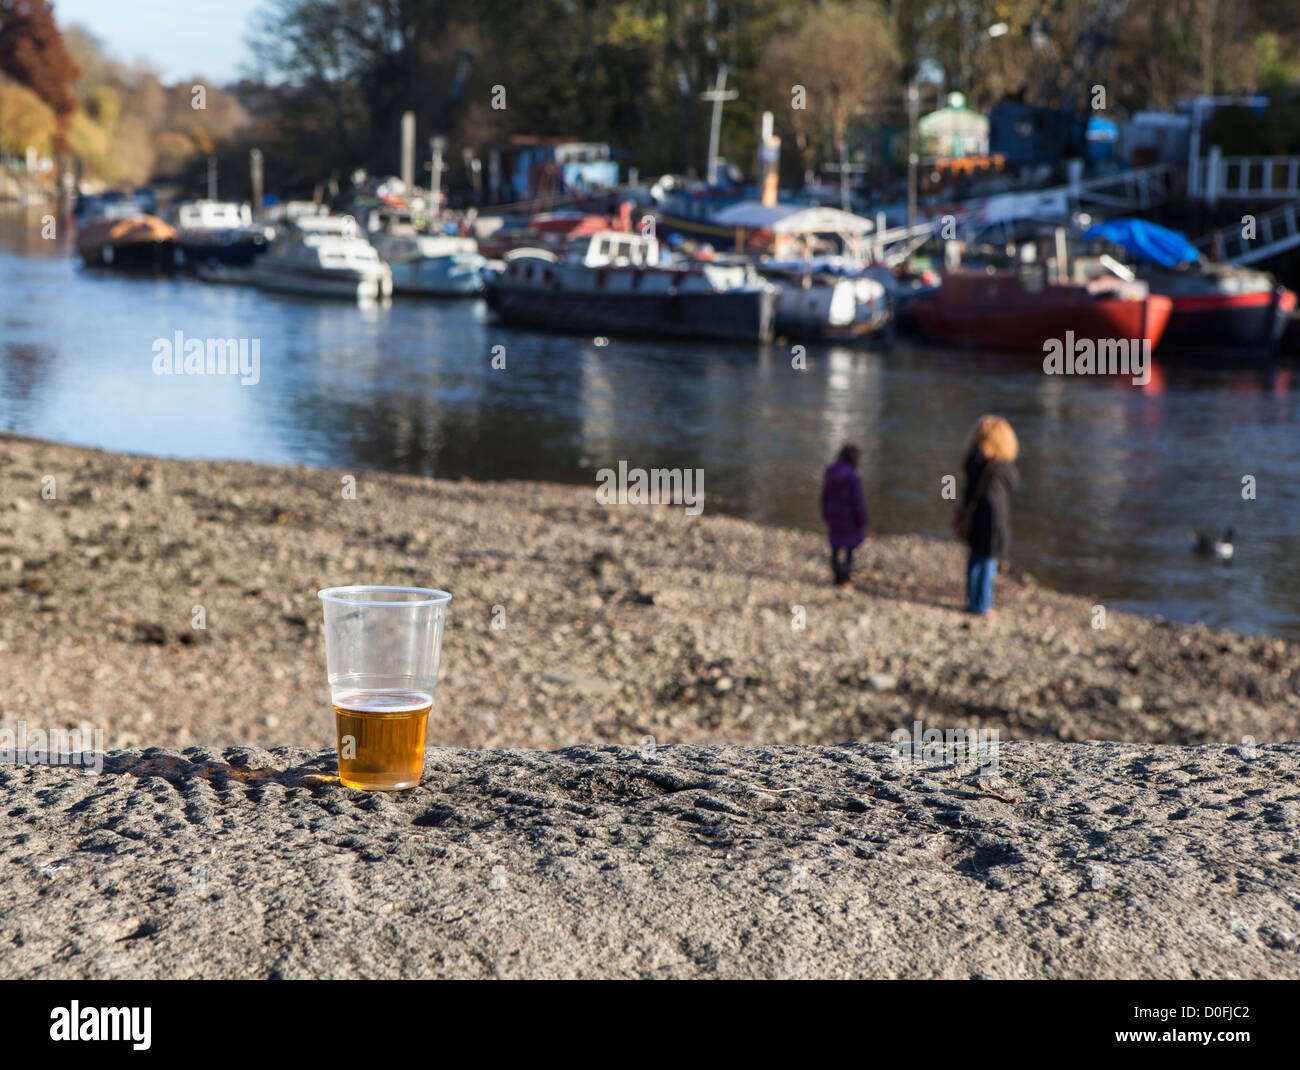 A half empty beer glass is discarded  and people walk on the exposed river bed of the Thames River at Low tide Stock Photo